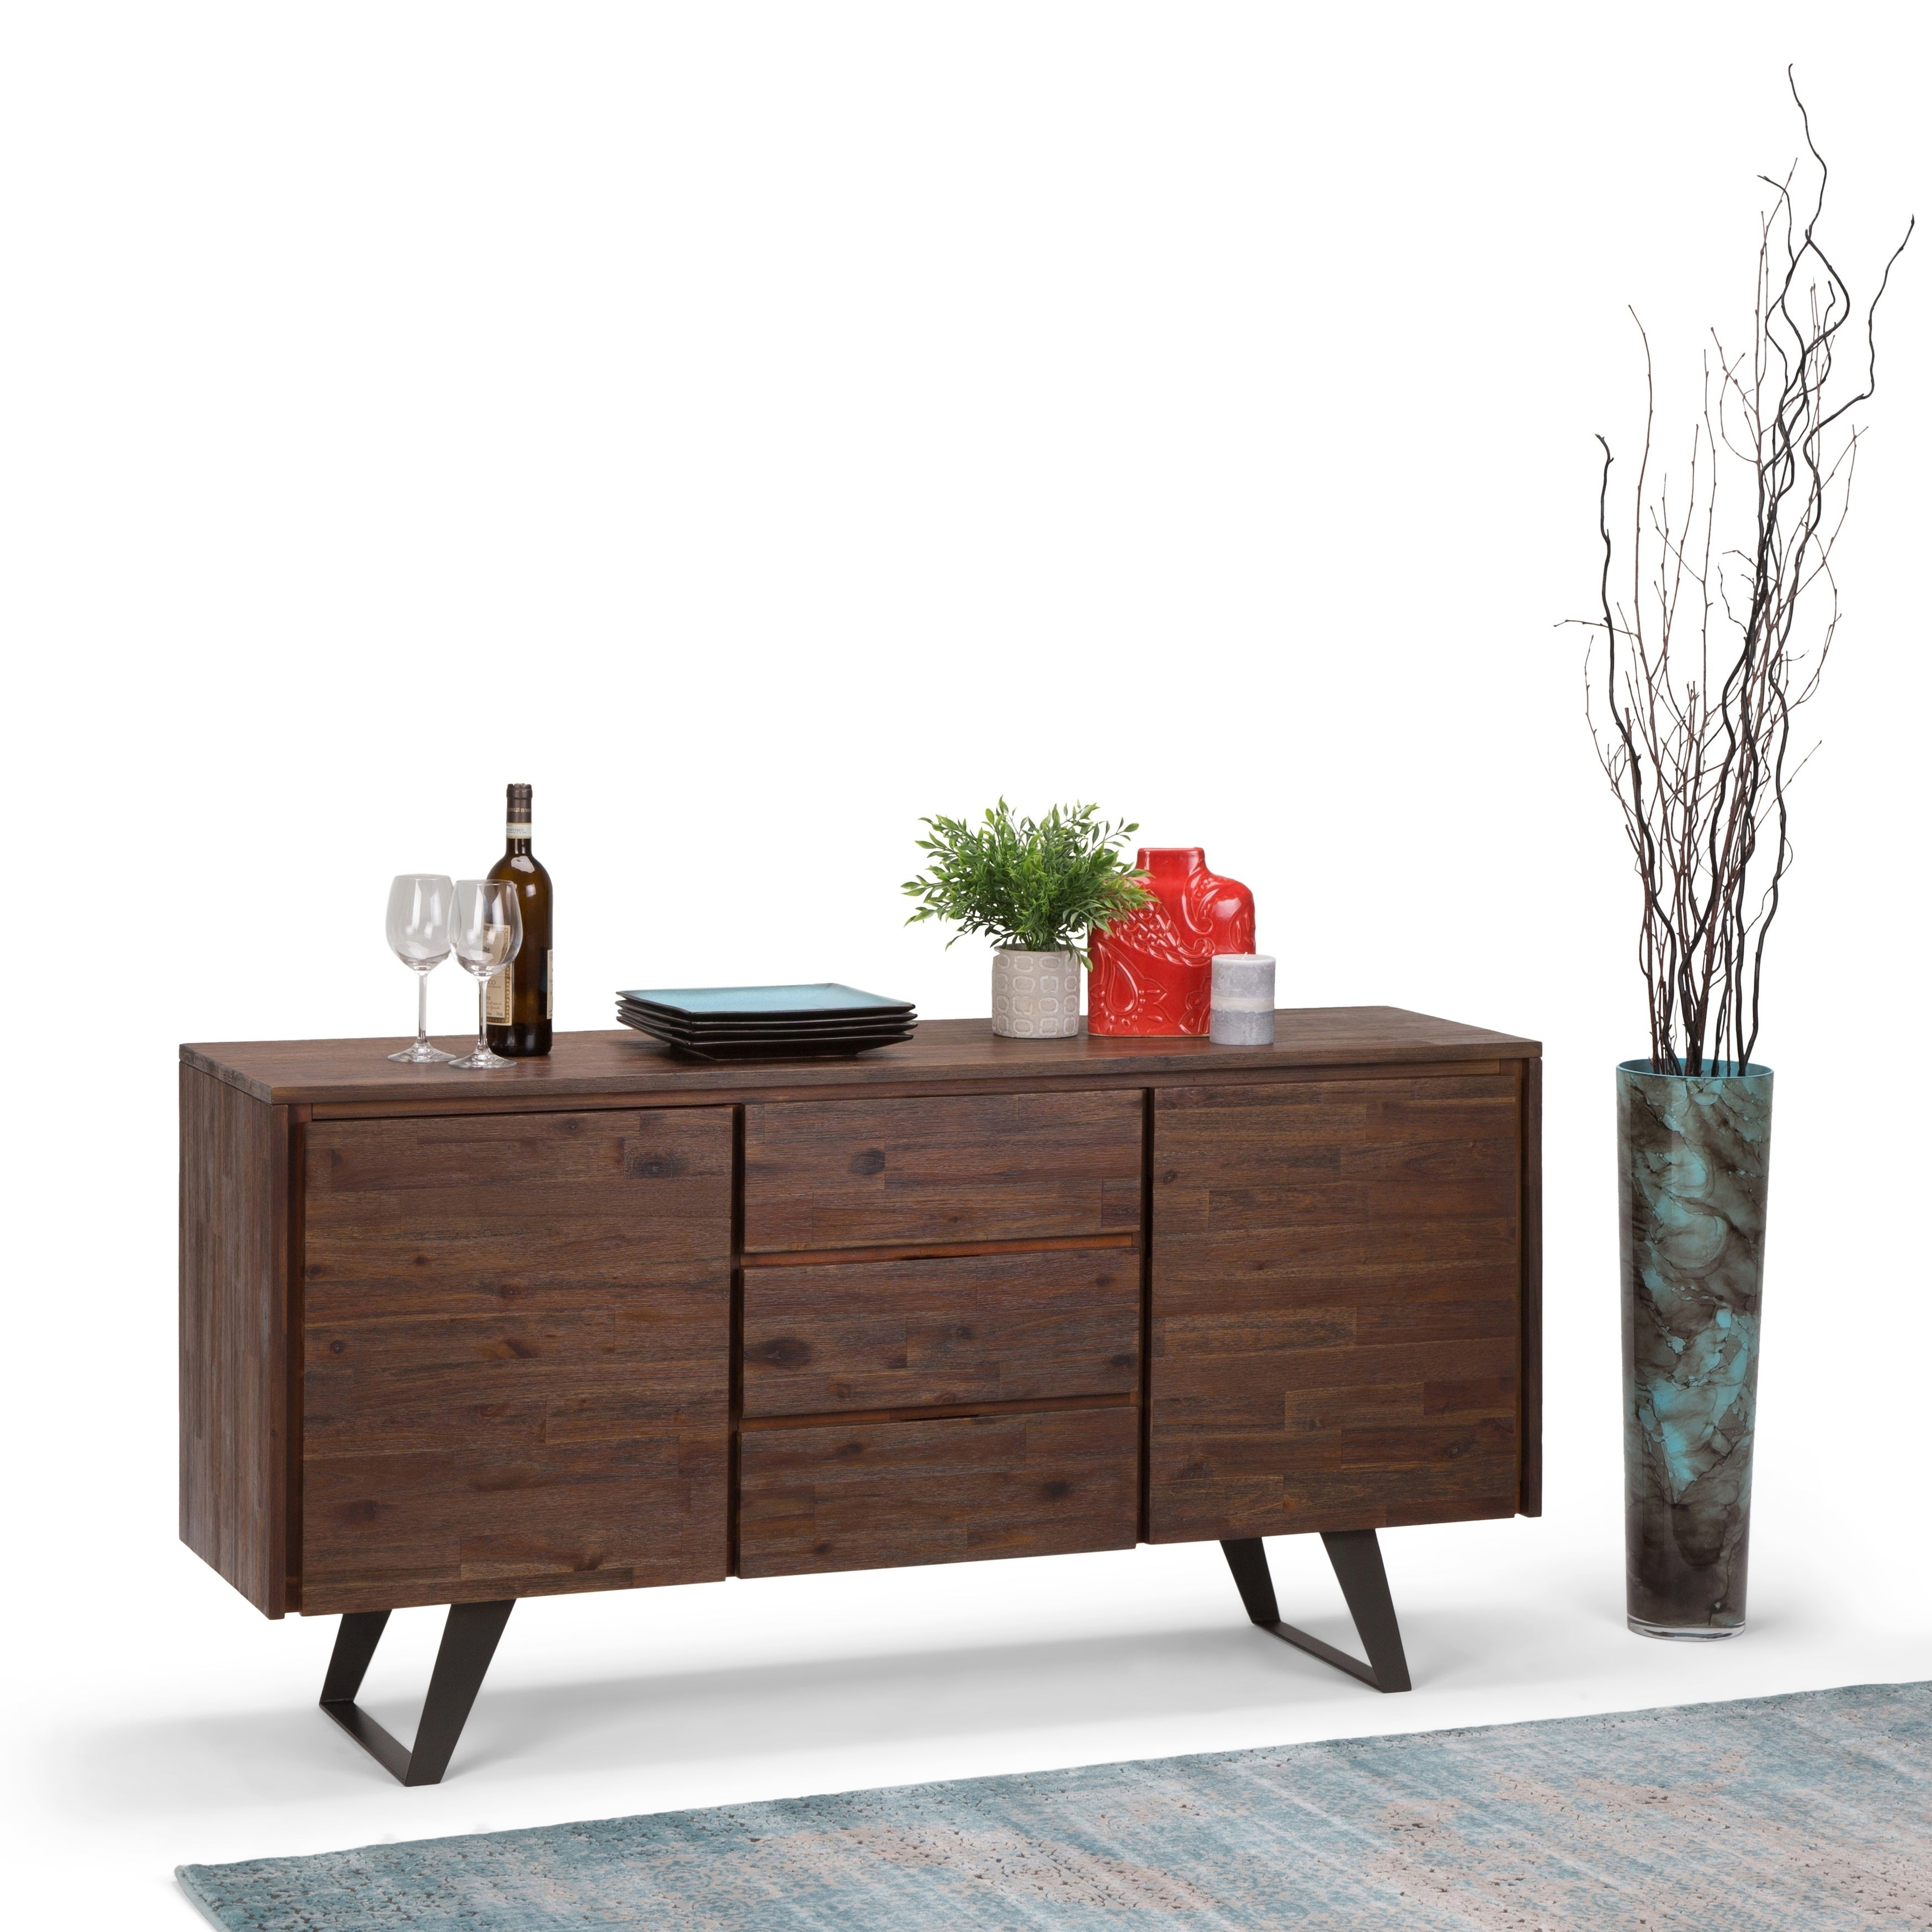 Wyndenhall Mitchell Solid Acacia Wood And Metal 60 Inchwide Modern  Industrial Sideboard Buffet In Distressed Charcoal Brown pertaining to Industrial Style 3-Drawer Buffets (Image 30 of 30)